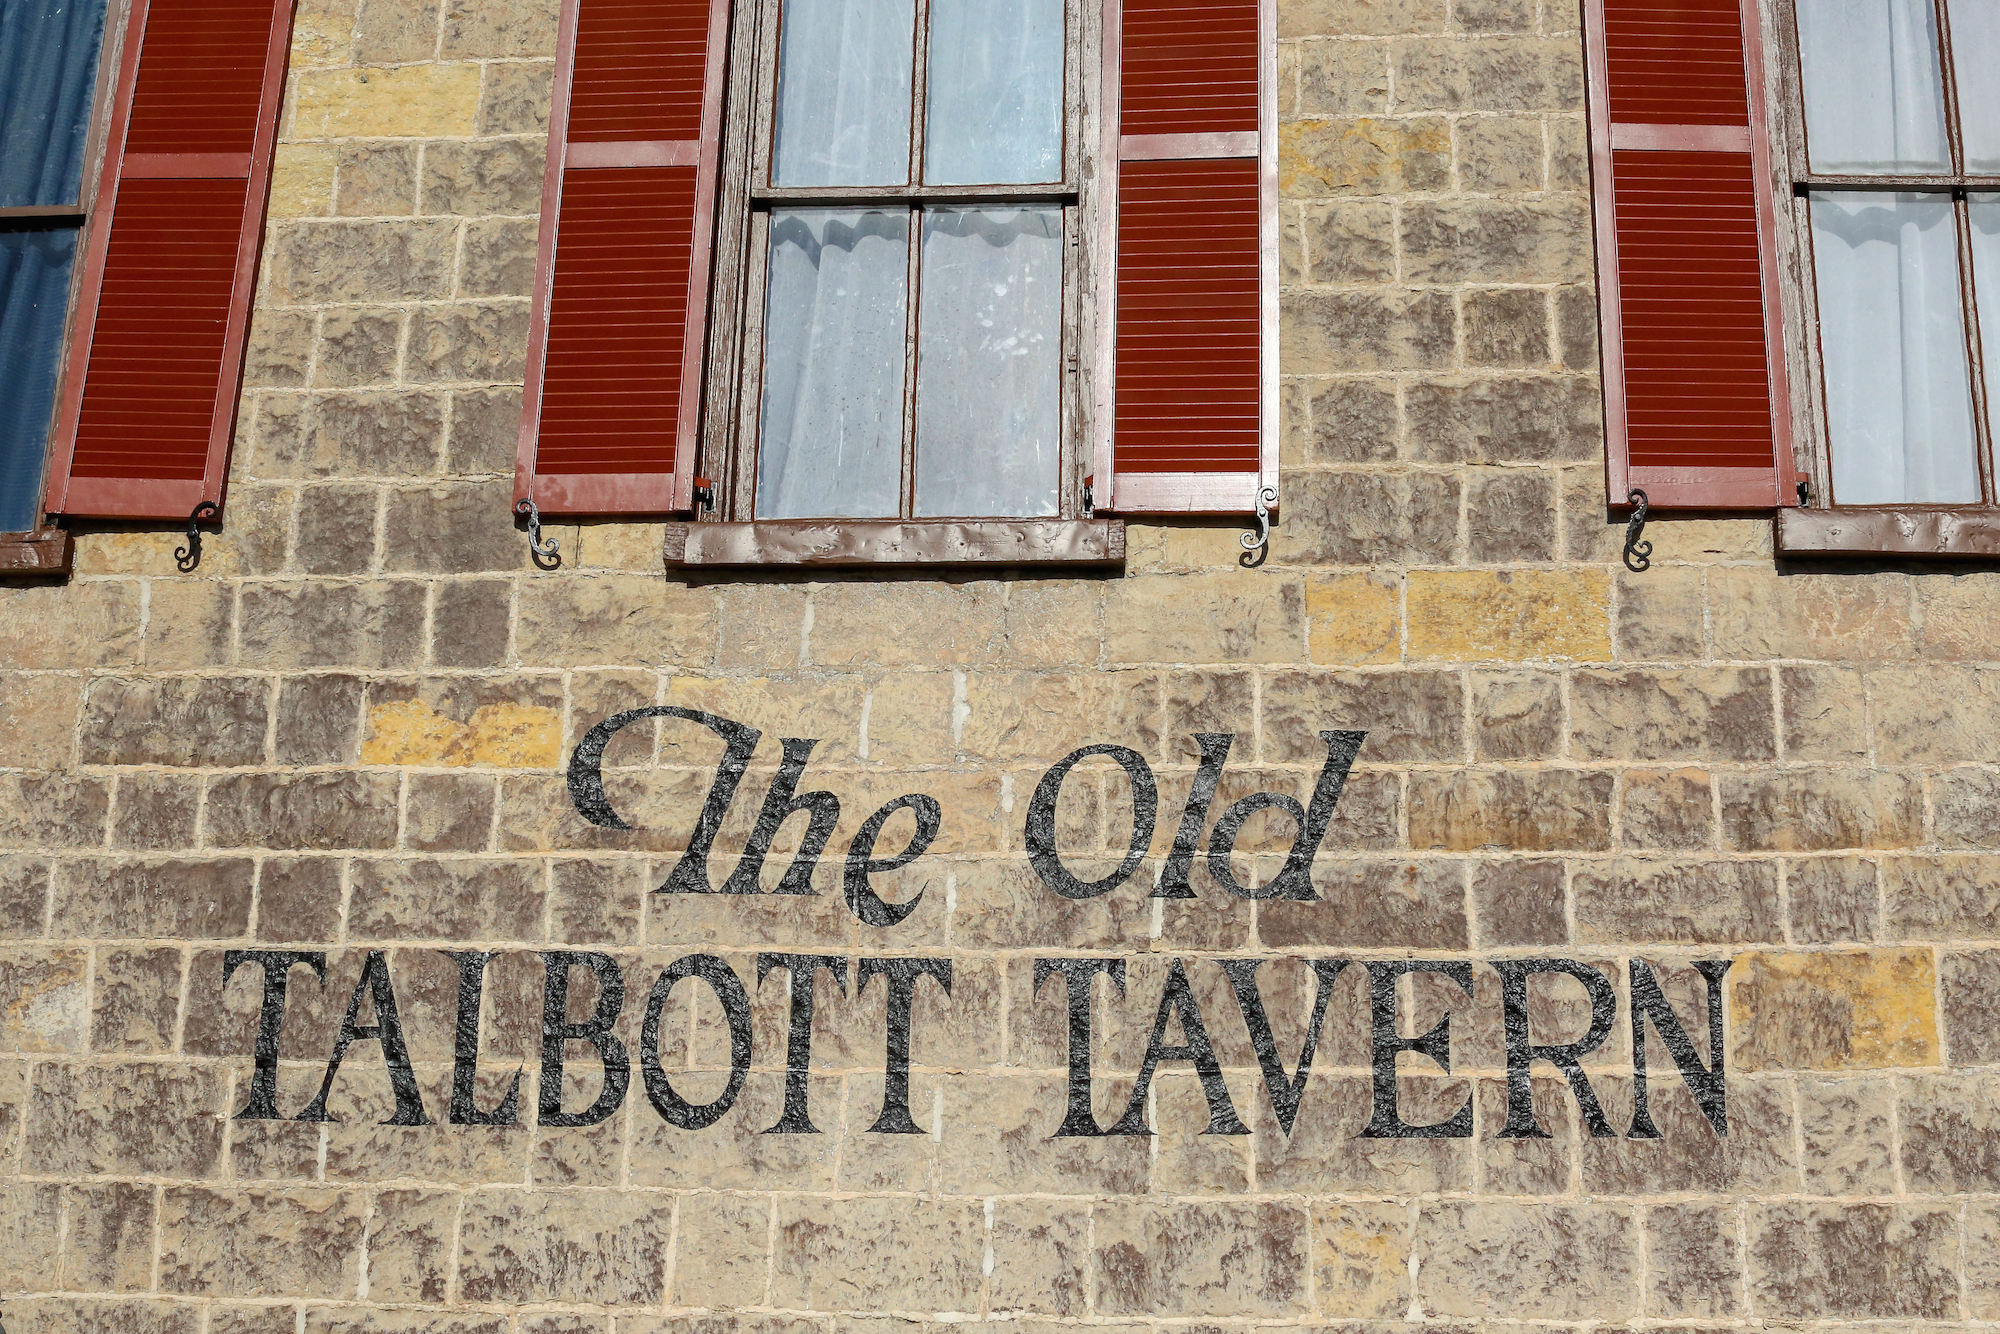 talbott tavern kentucky